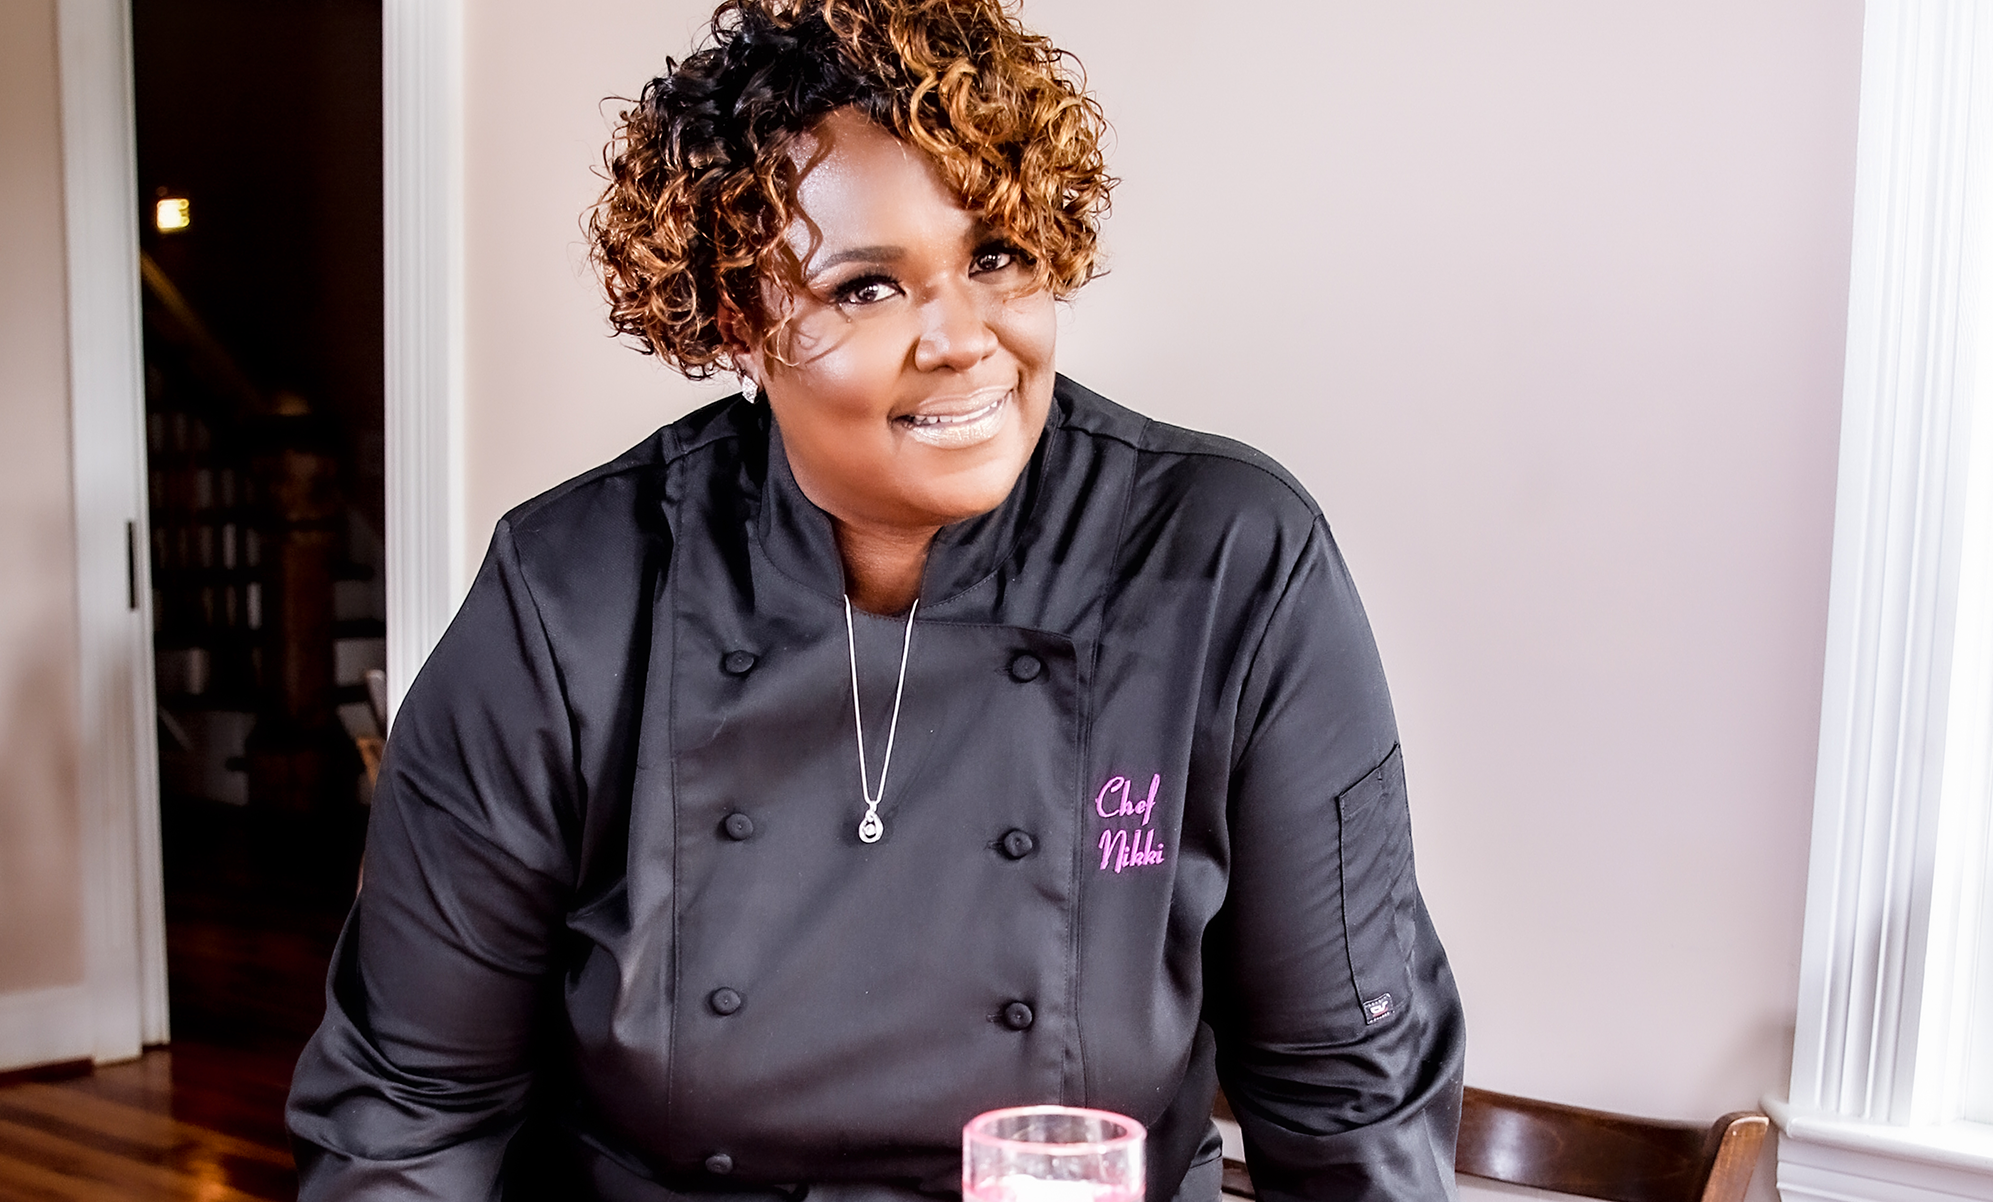 Chef Nikki in the black chef jacket